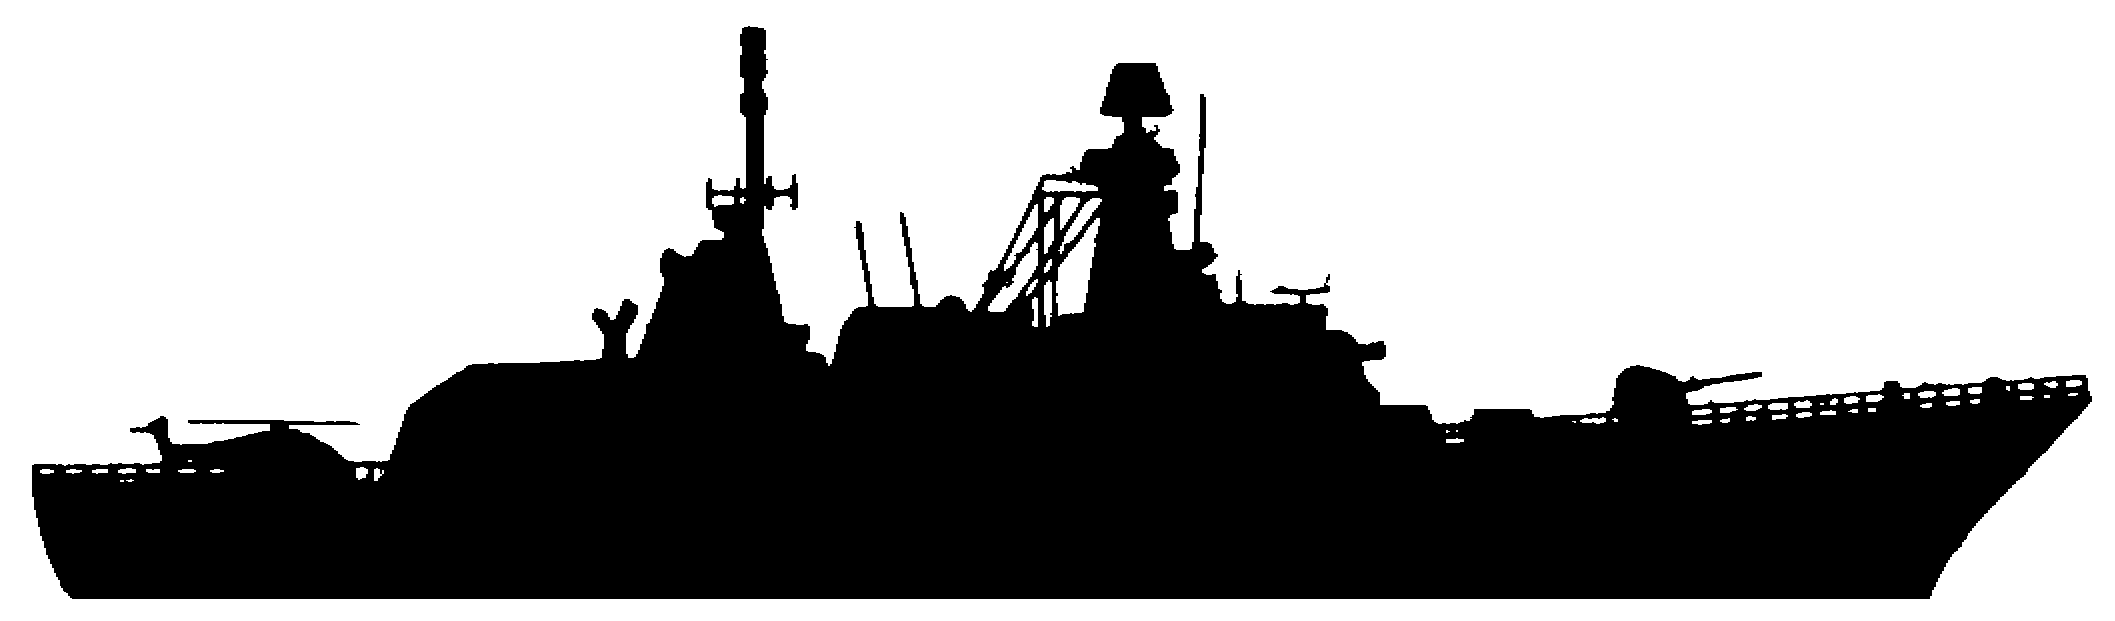 aircraft carrier silhouette at getdrawings com free for personal rh getdrawings com us aircraft carrier clipart us aircraft carrier clipart